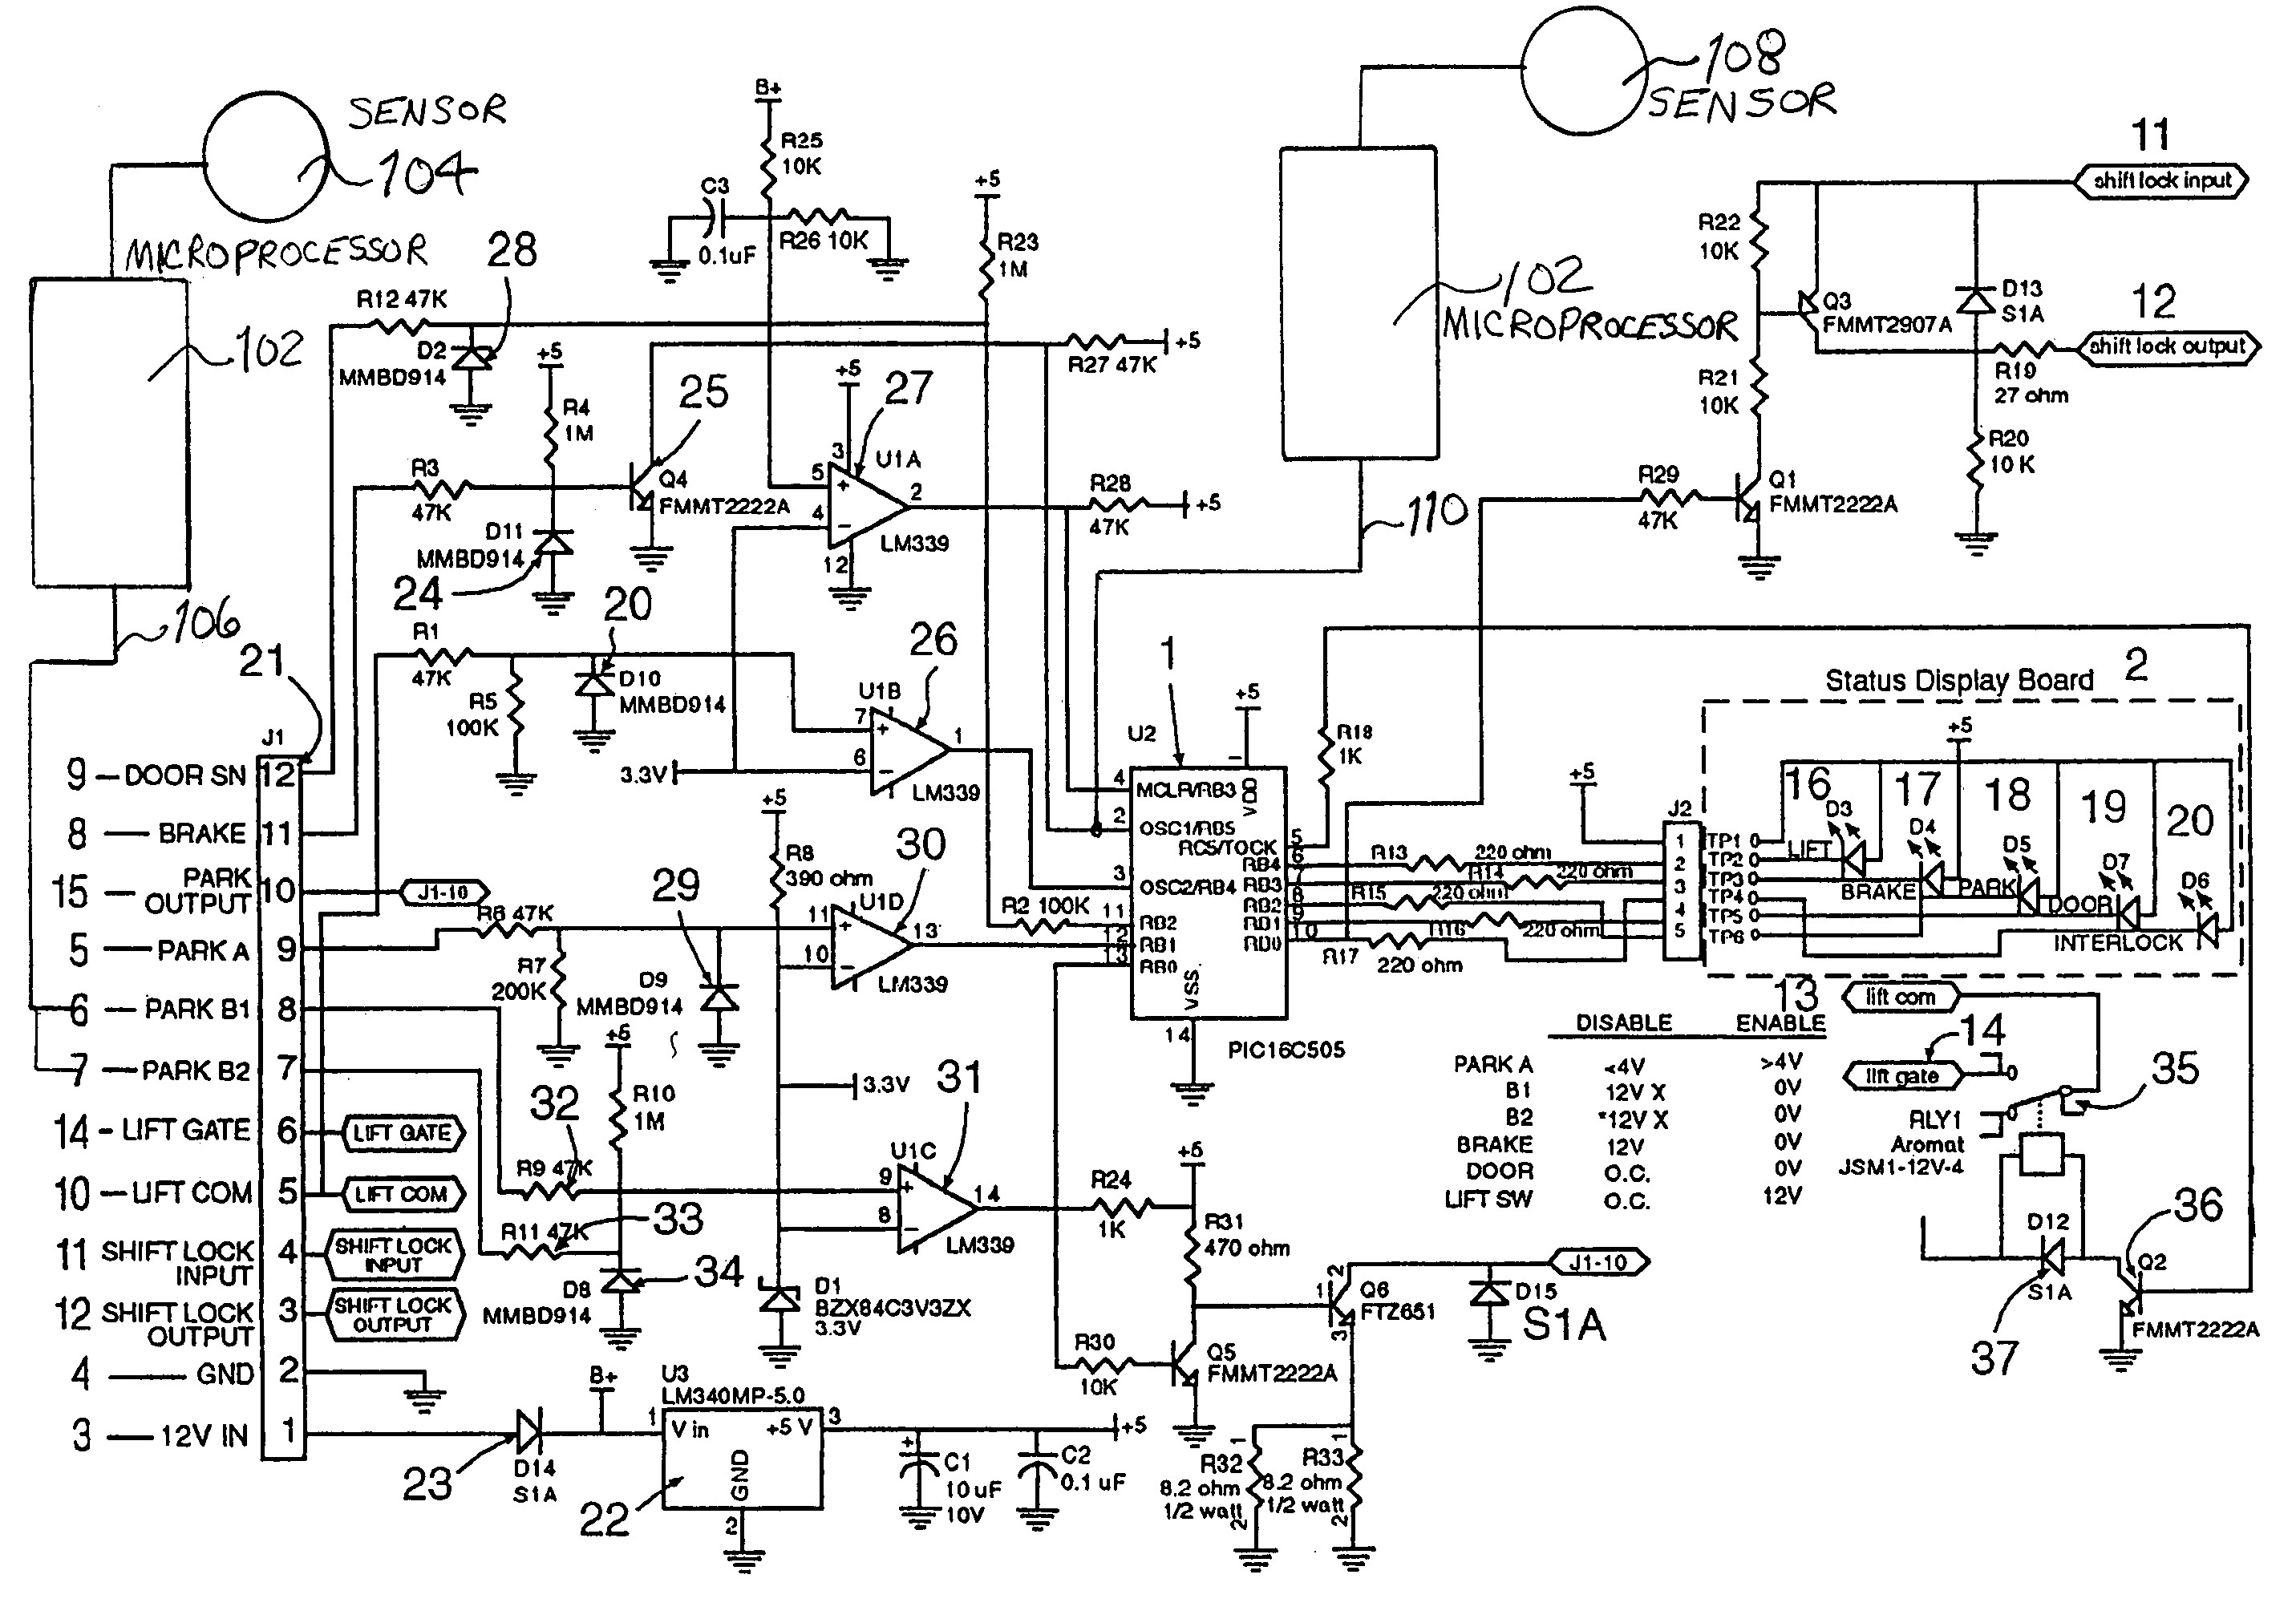 bruno scooter wiring diagram wiring diagram writebruno wiring diagram download wiring diagram razor electric scooter wiring diagram bruno scooter wiring diagram